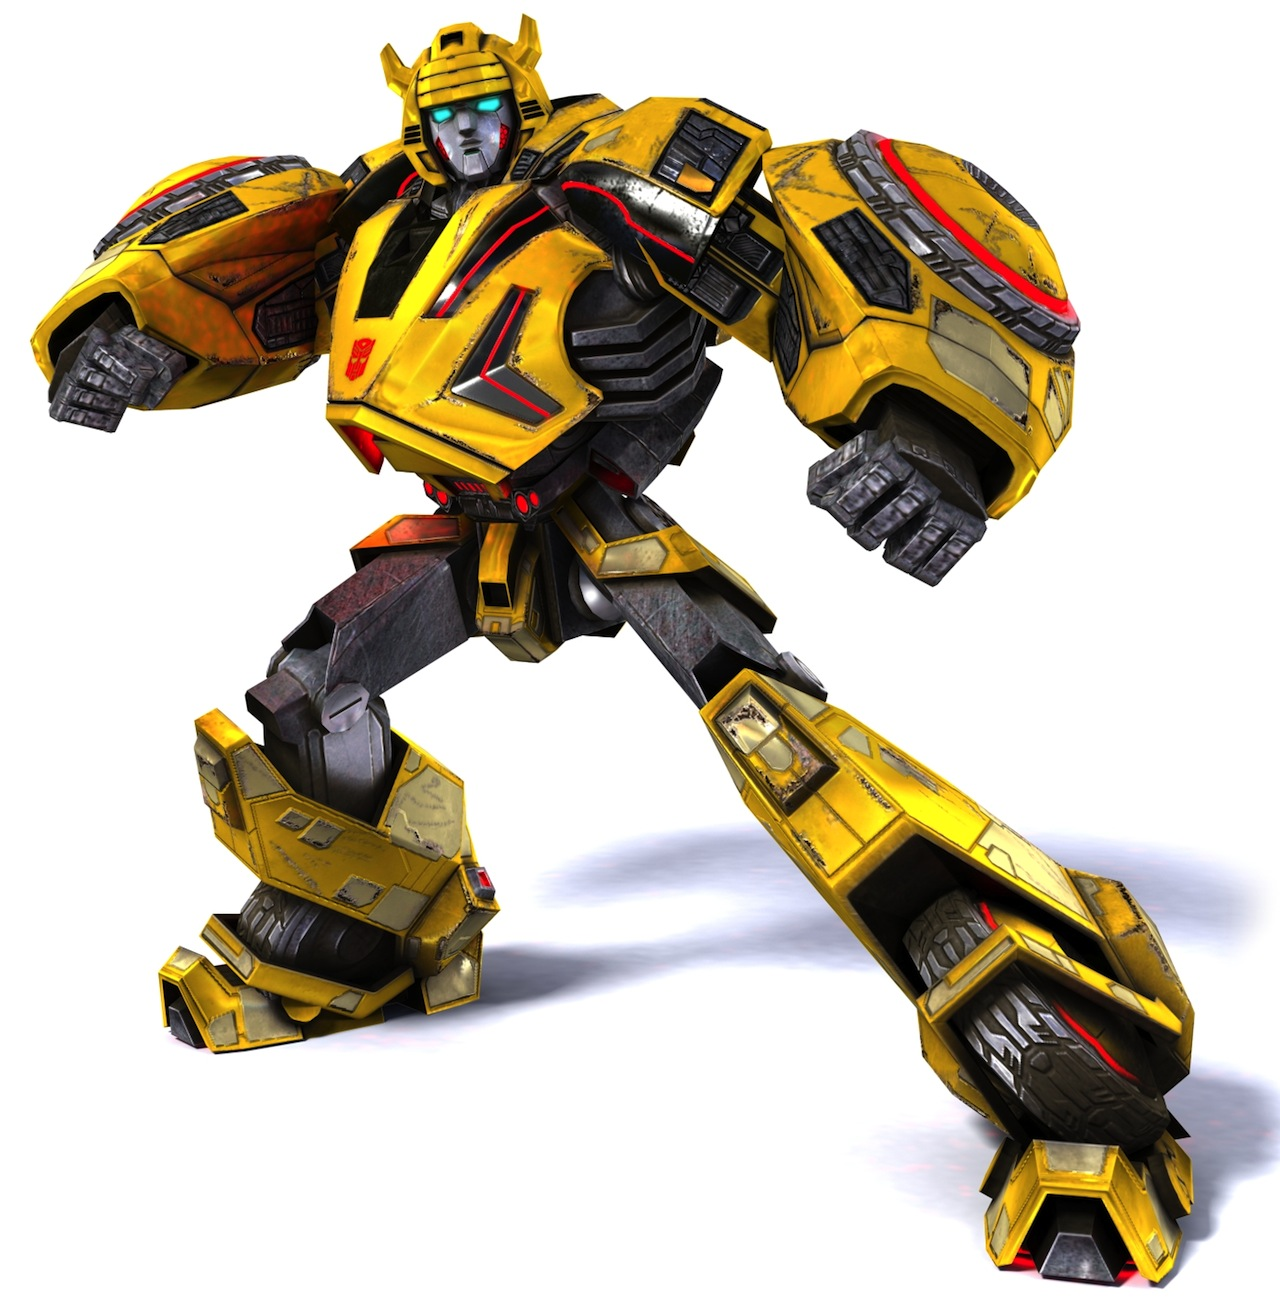 Bumblebee wfc teletraan i the transformers wiki fandom powered by wikia - Images of bumblebee from transformers ...